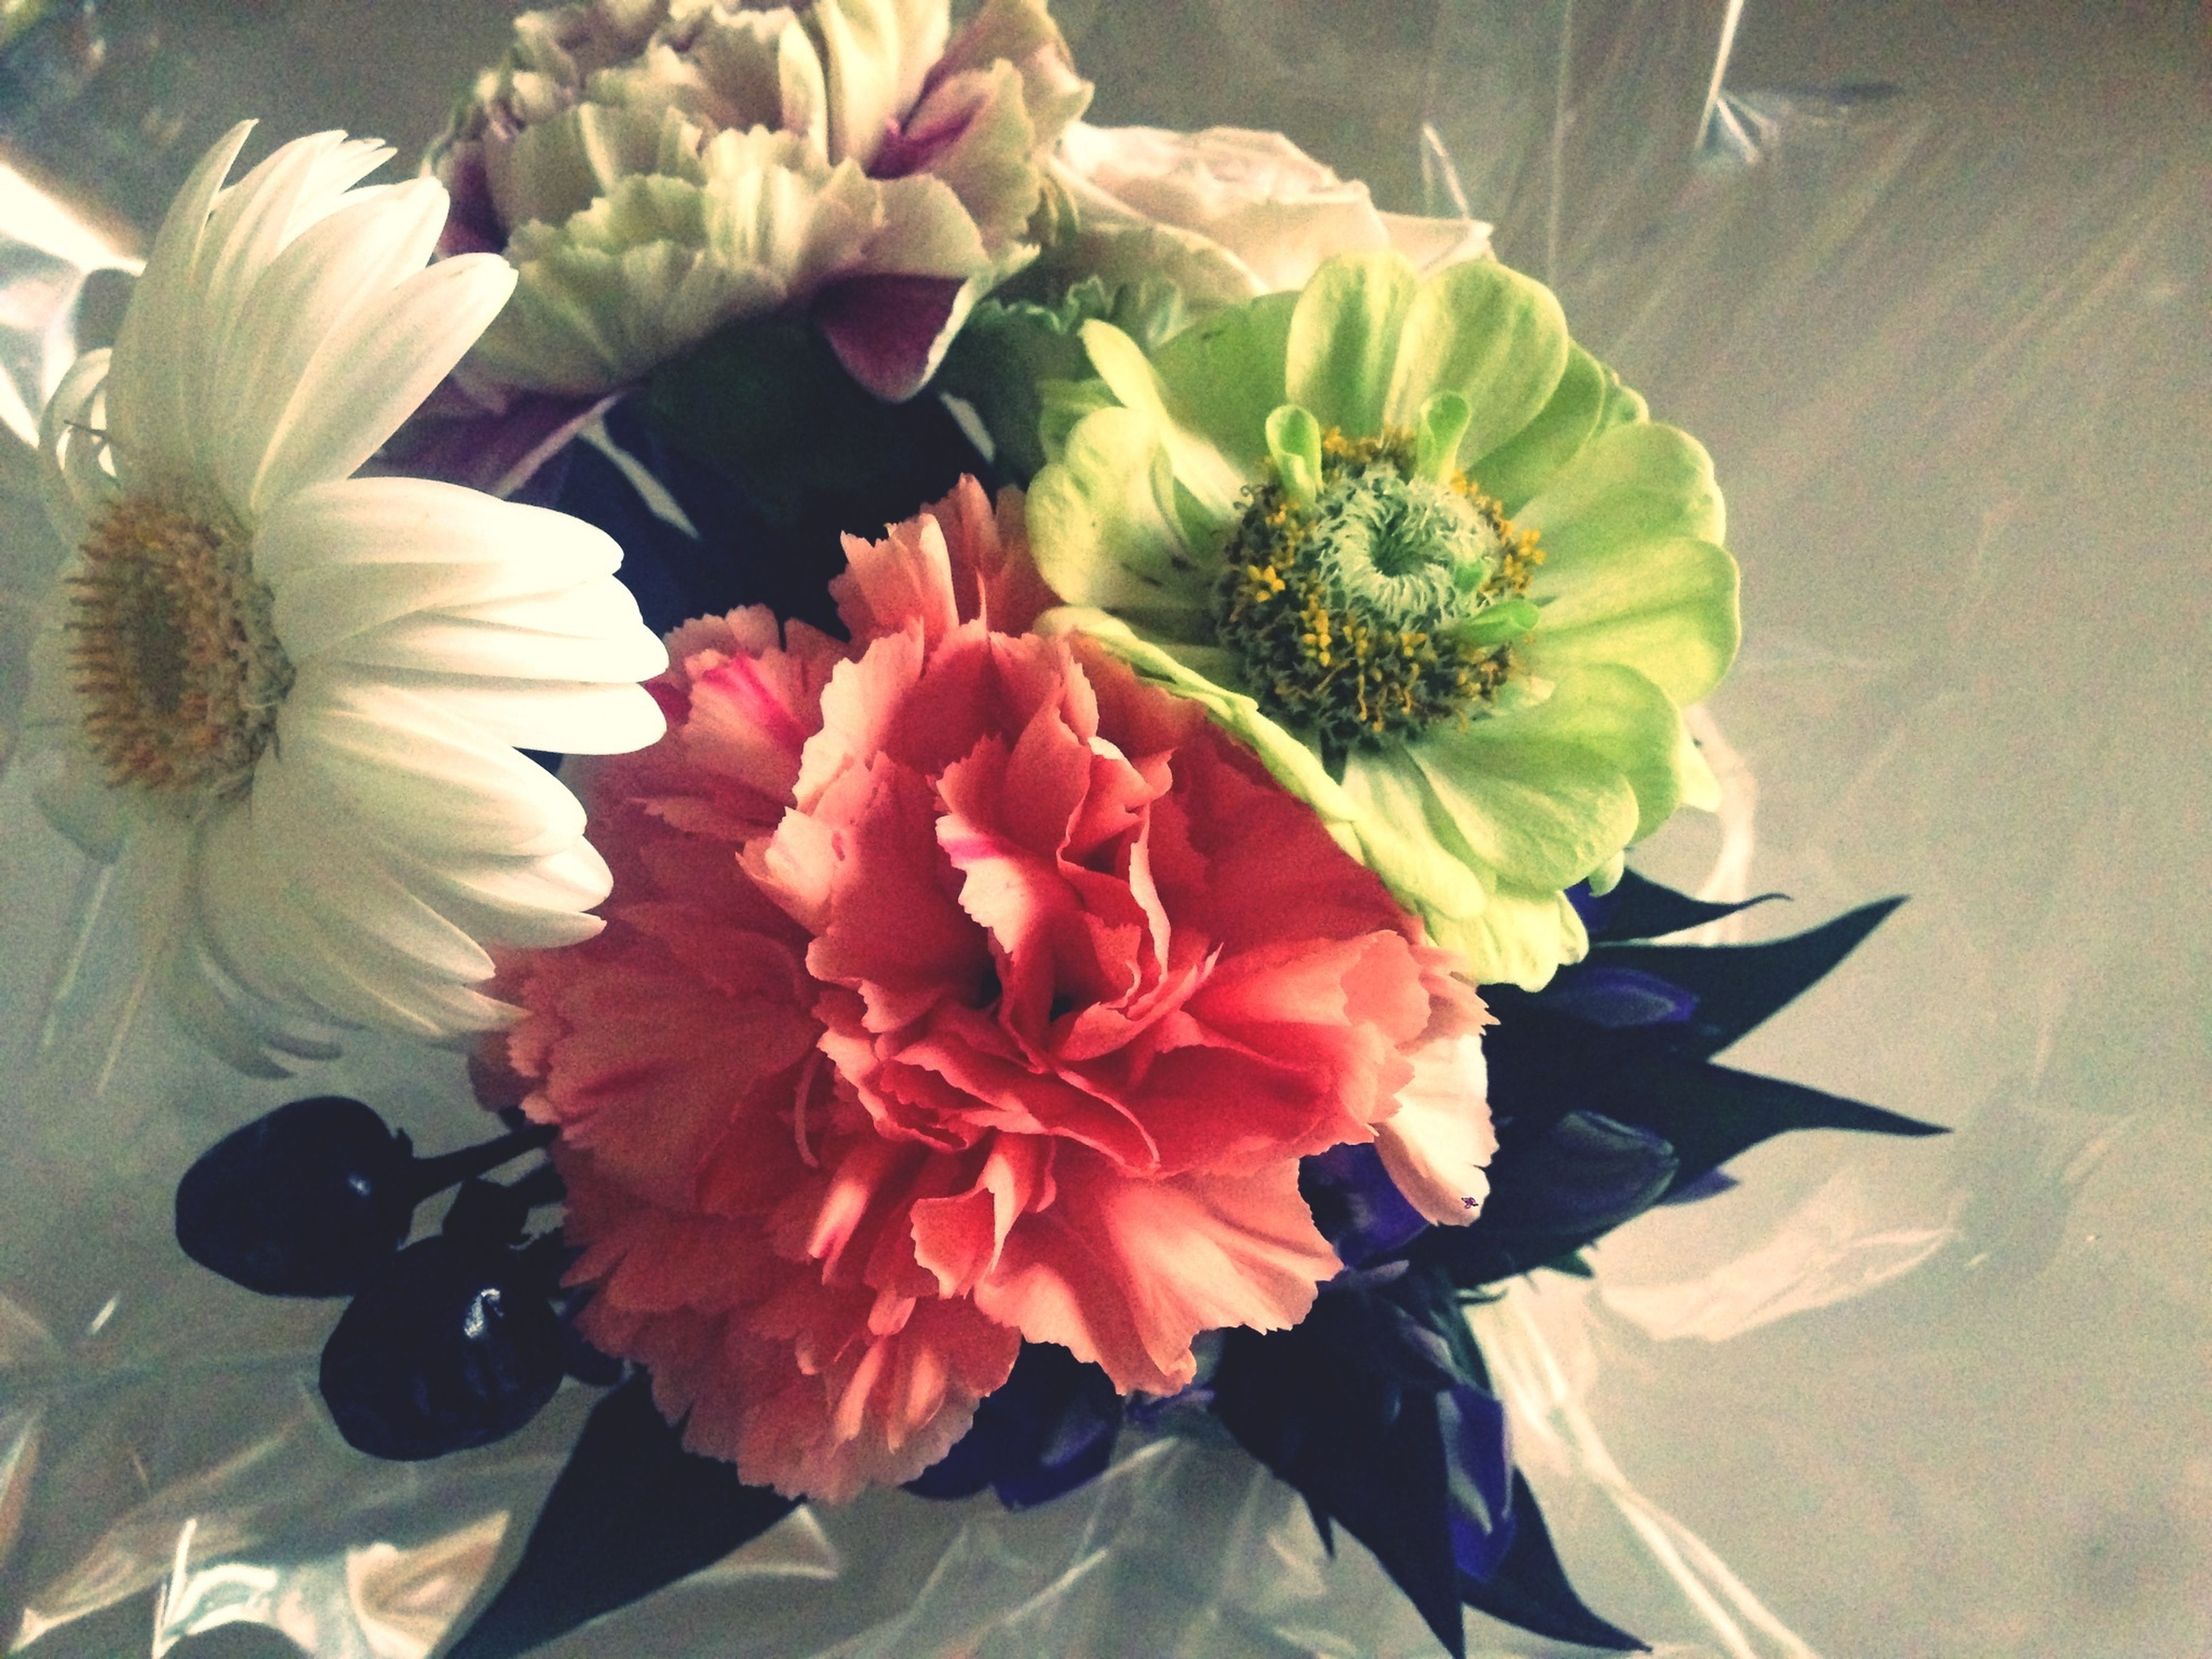 flower, petal, freshness, indoors, flower head, fragility, vase, beauty in nature, high angle view, table, close-up, rose - flower, bunch of flowers, bouquet, flower arrangement, nature, growth, plant, decoration, potted plant